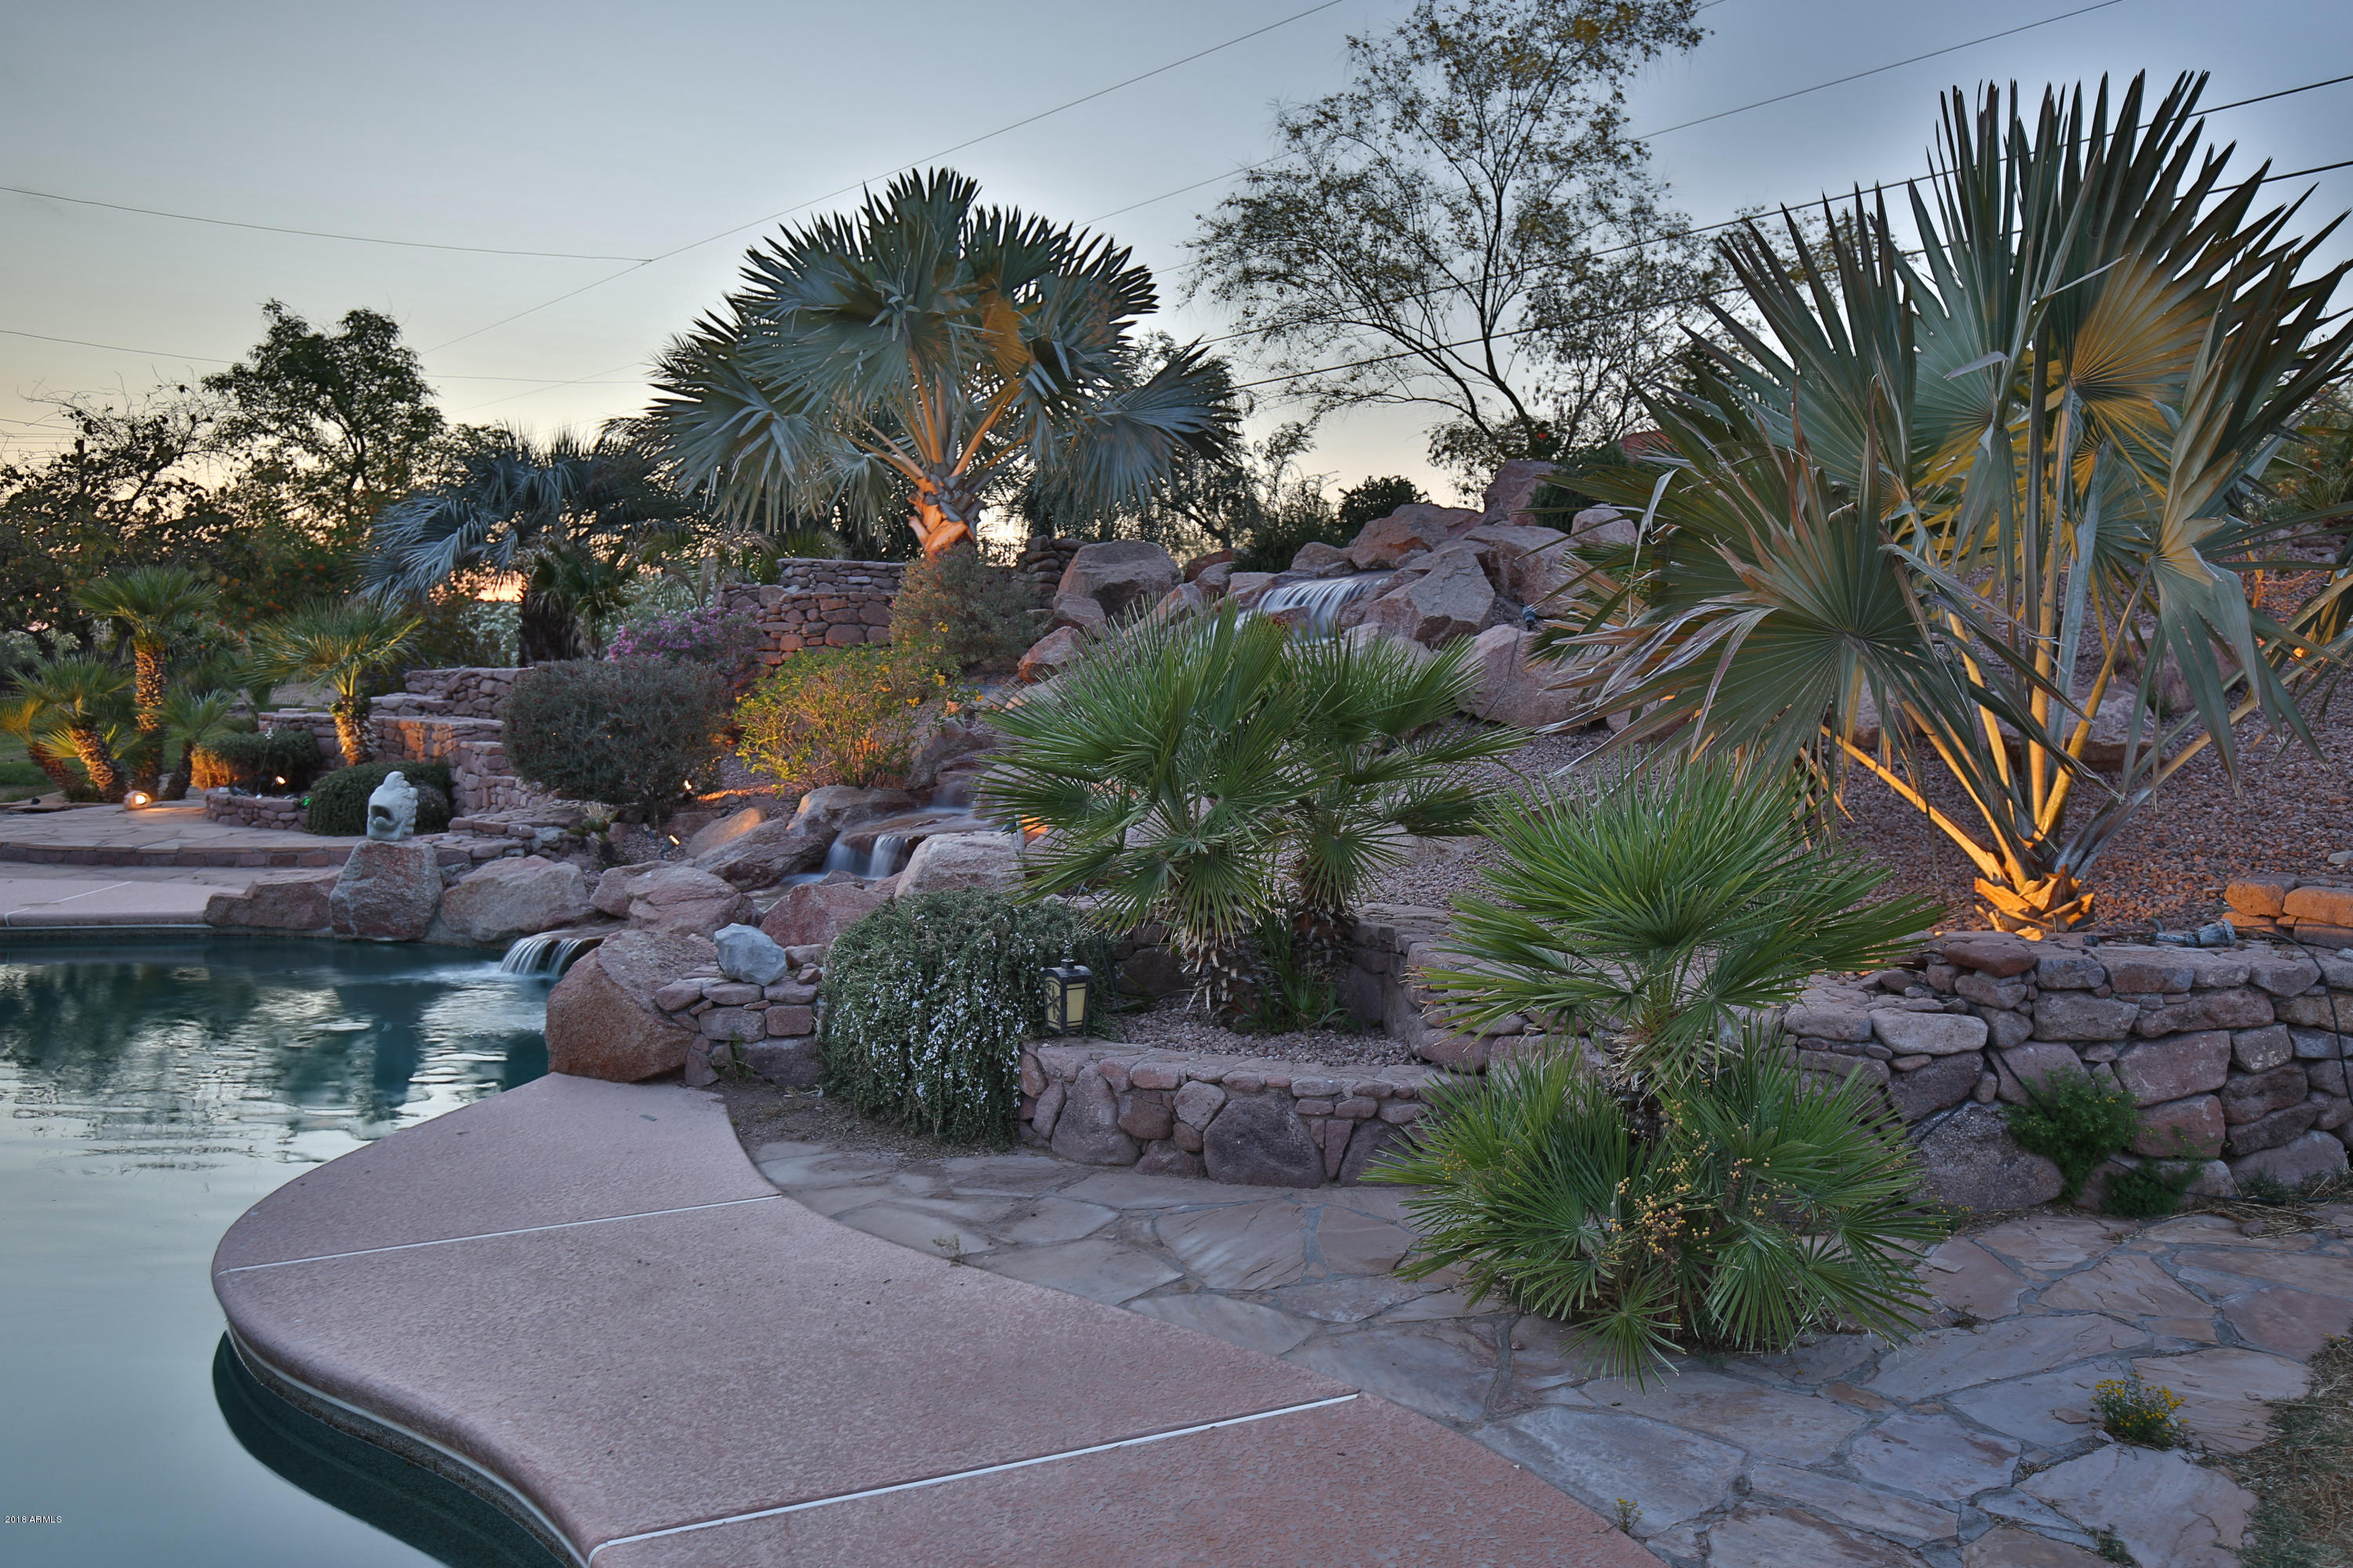 MLS 5761815 1091 S GERONIMO Road, Apache Junction, AZ 85119 Apache Junction AZ Private Pool